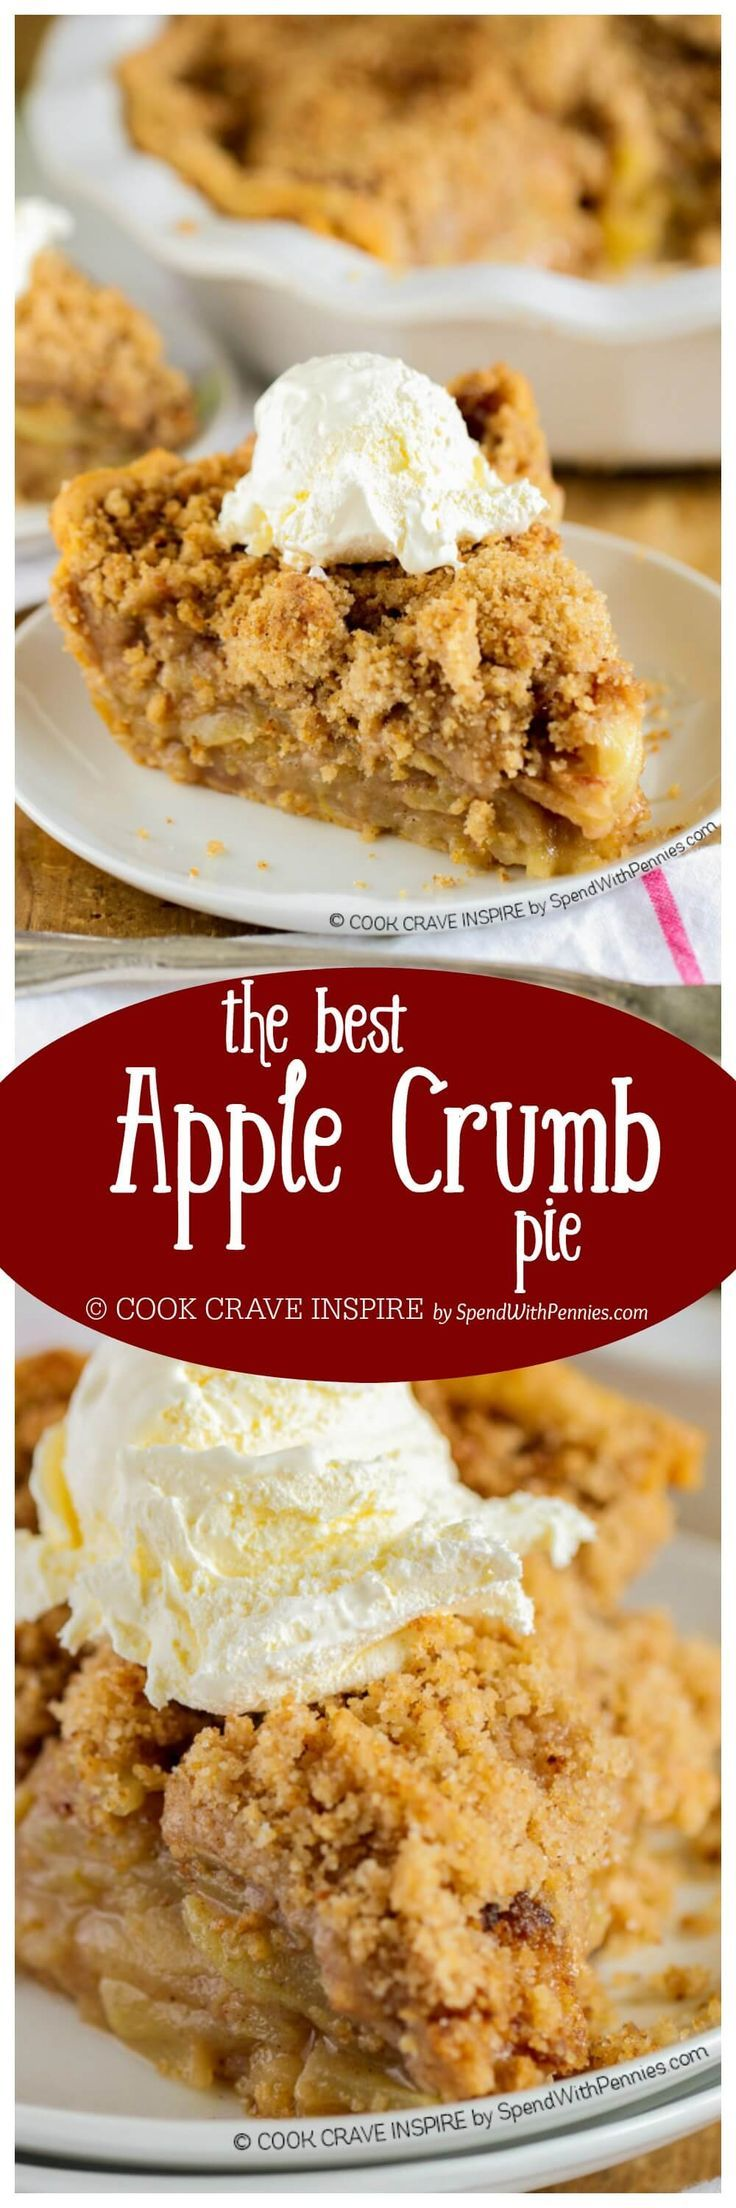 The BEST Apple Crumb Pie! This is truly the best apple pie recipe you'll ever make! Loaded with fresh tart apples and topped with a sweet brown sugar crumble, this is one recipe that will be requested (Best Pie Recipes)